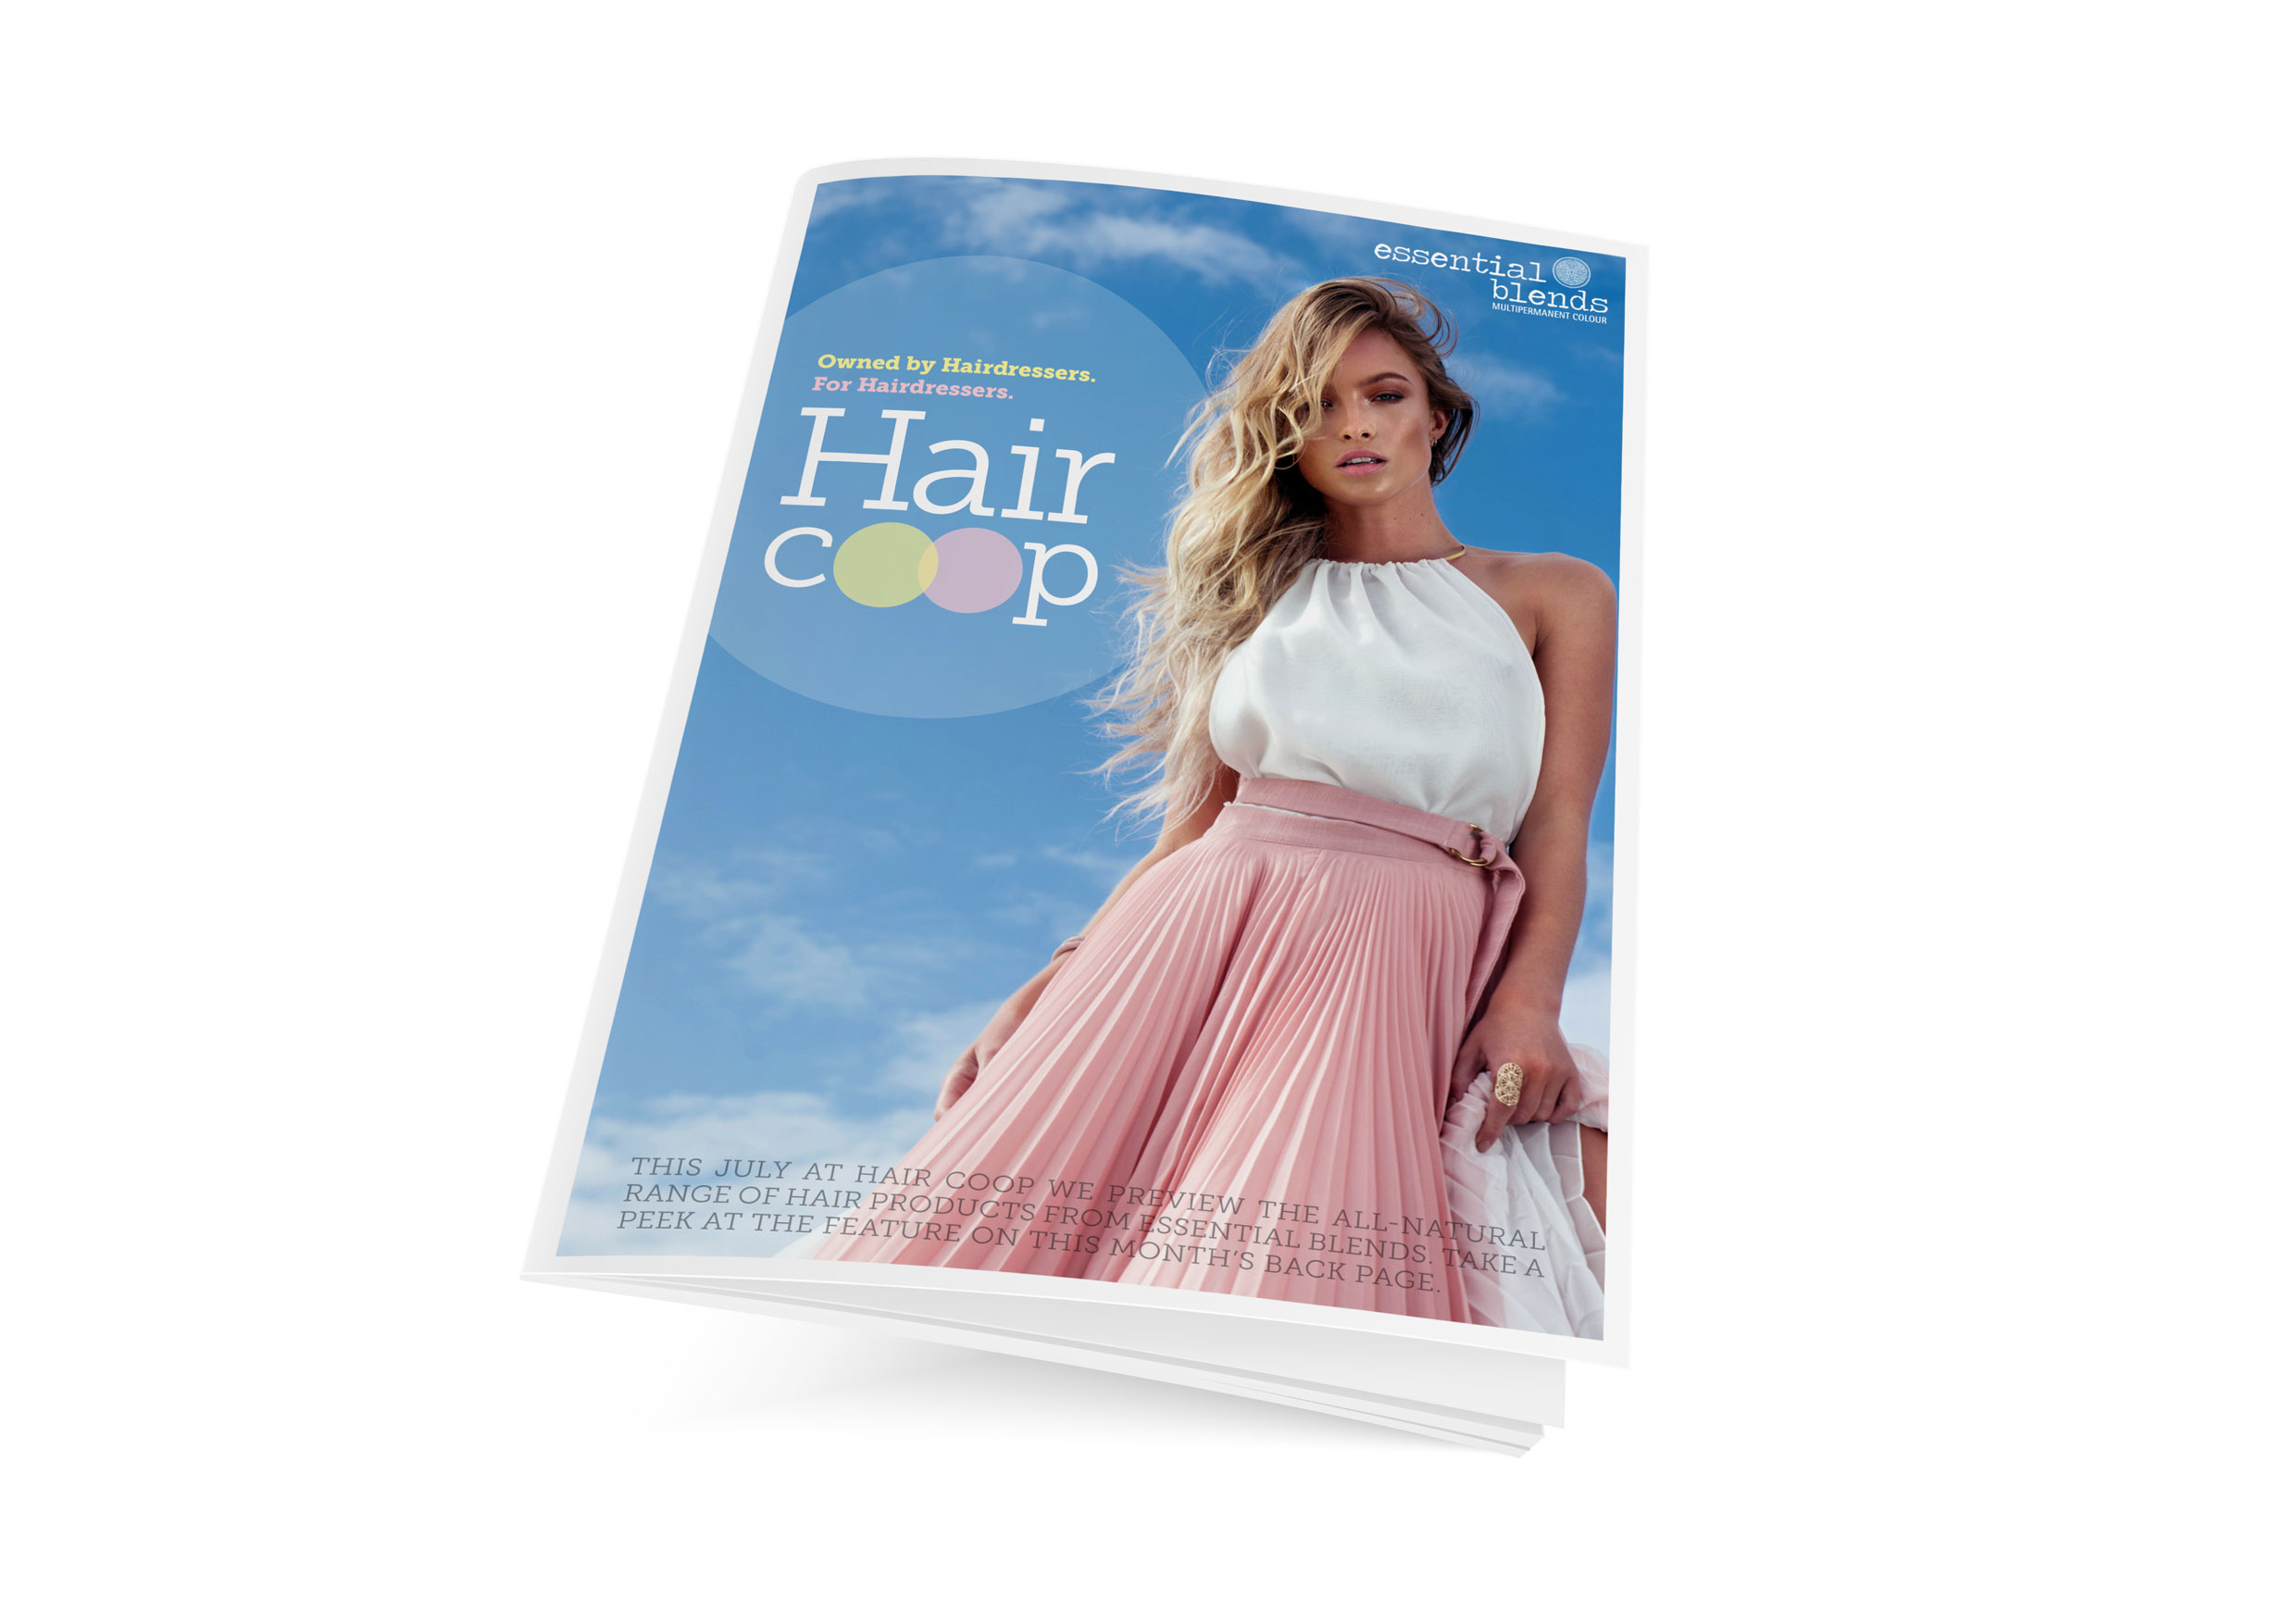 HAIR-COOP-COVER_1